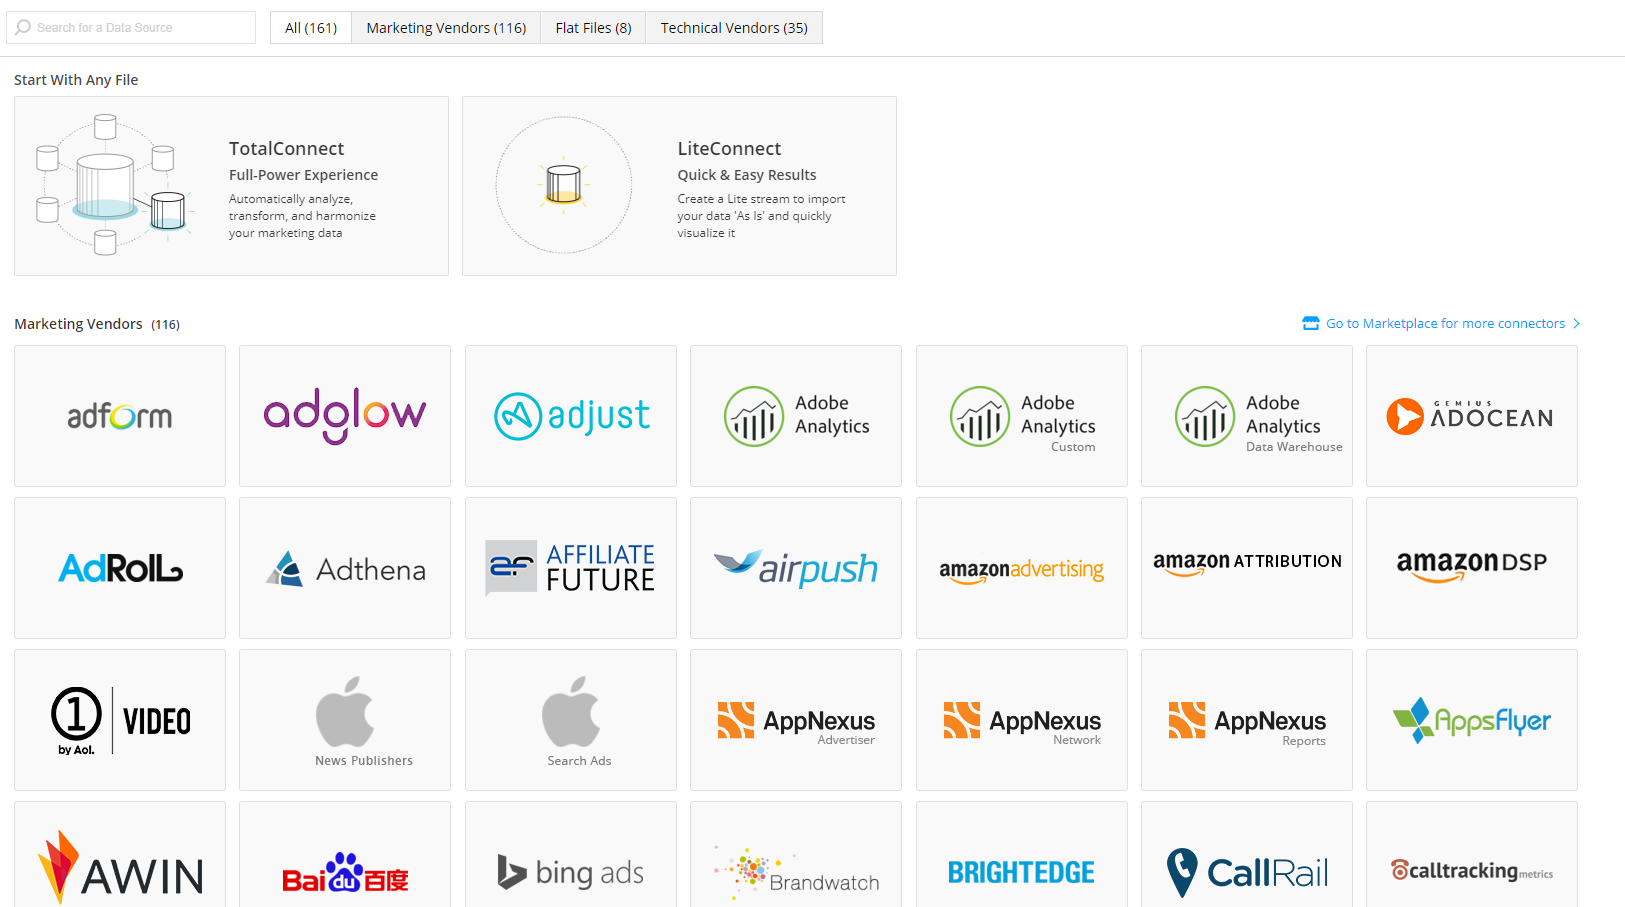 Datorama consolidates data from all major ad tech vendors in one place.